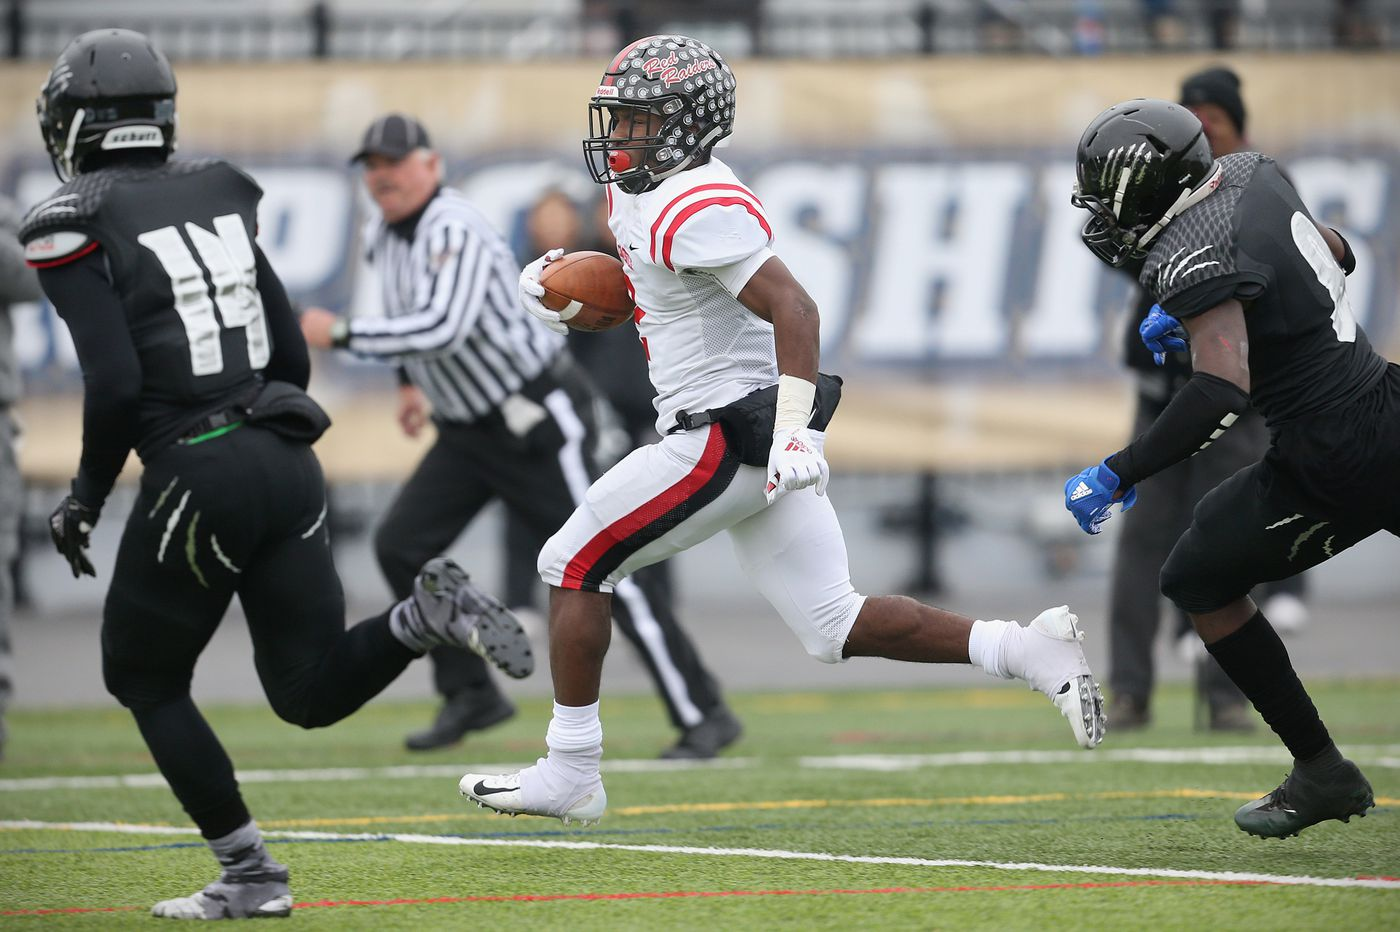 Coatesville's Dapree Bryant on brink of receiving record